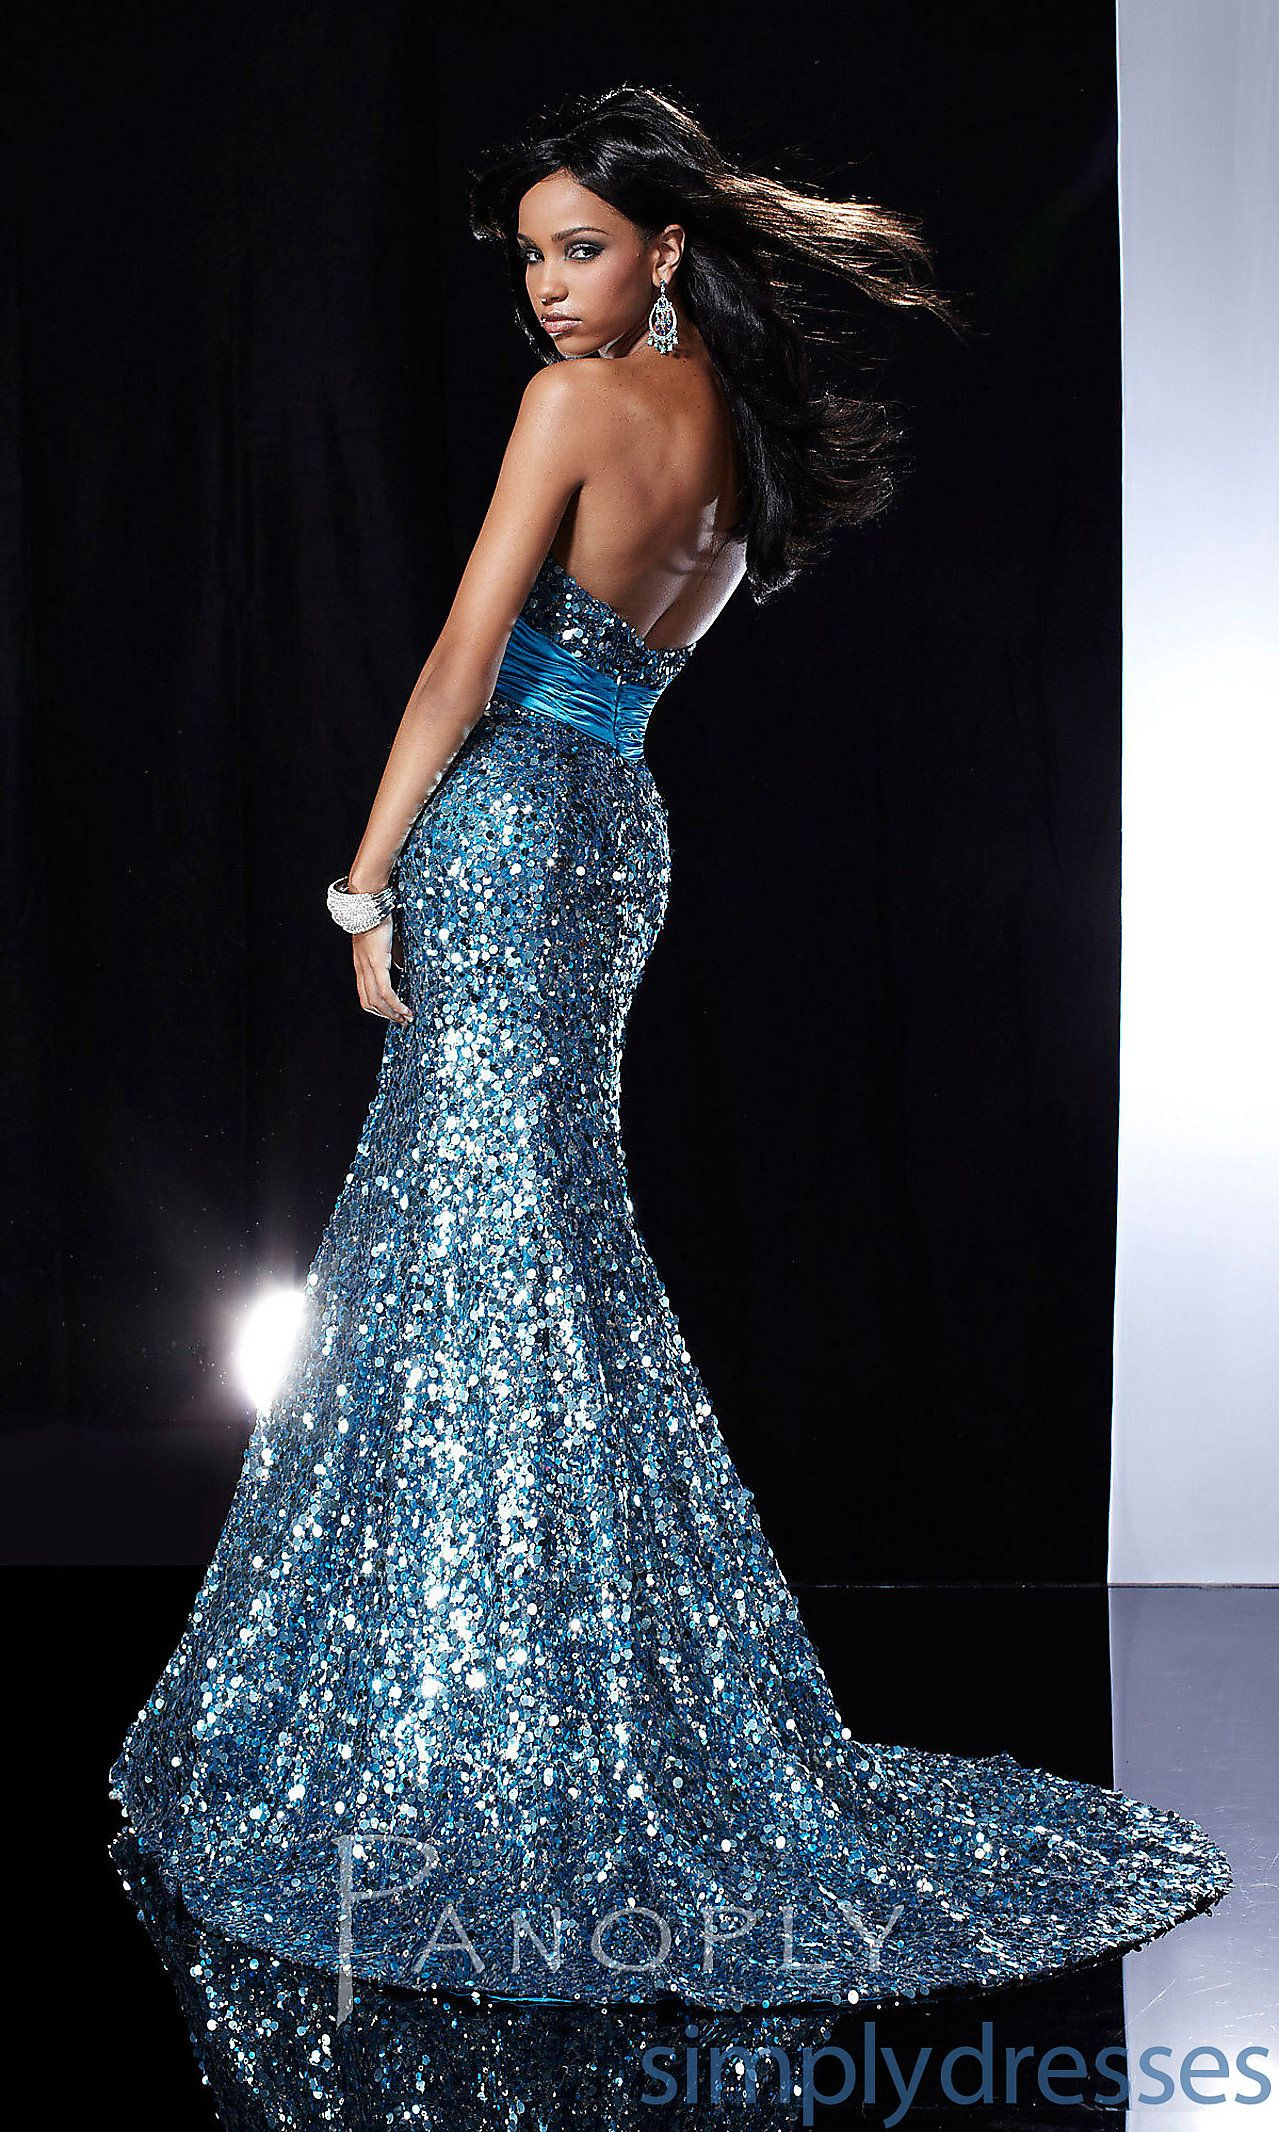 If i could afford it, man....Floor Length Strapless Sweetheart PA ...